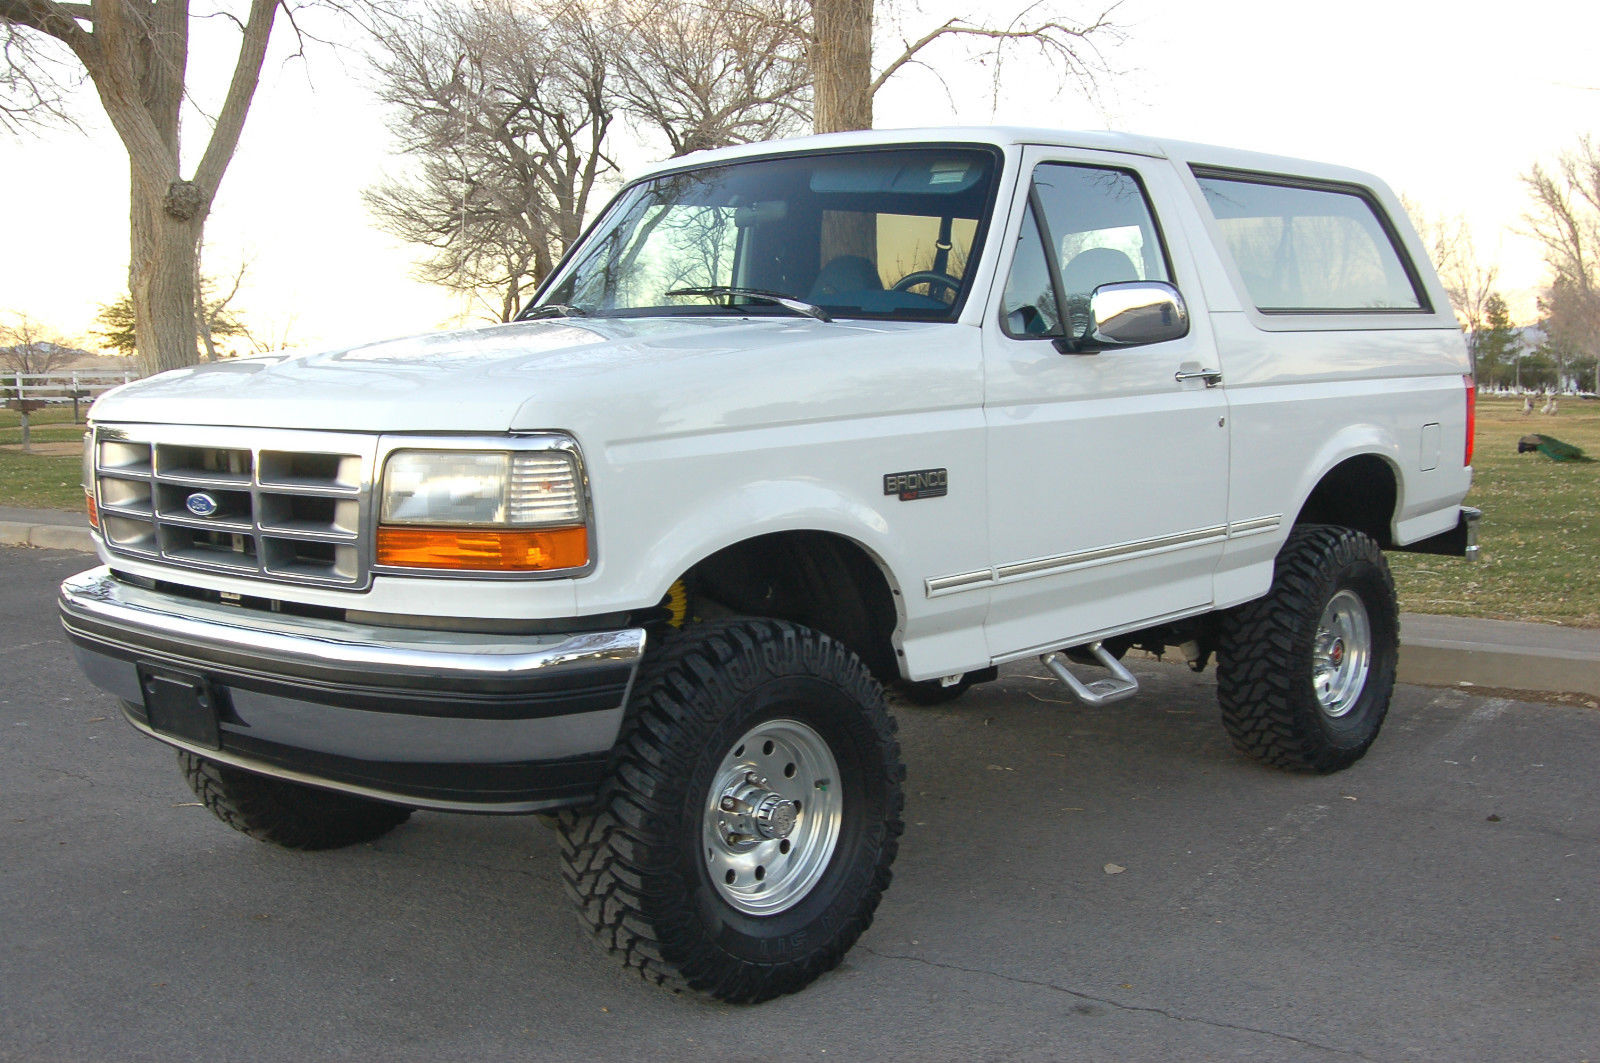 1994 ford bronco xlt 4x4 5 0l automatic rust free amazing condition no reserve for sale in las vegas nevada united states classic cars for sale rare cars collector cars muscle cars